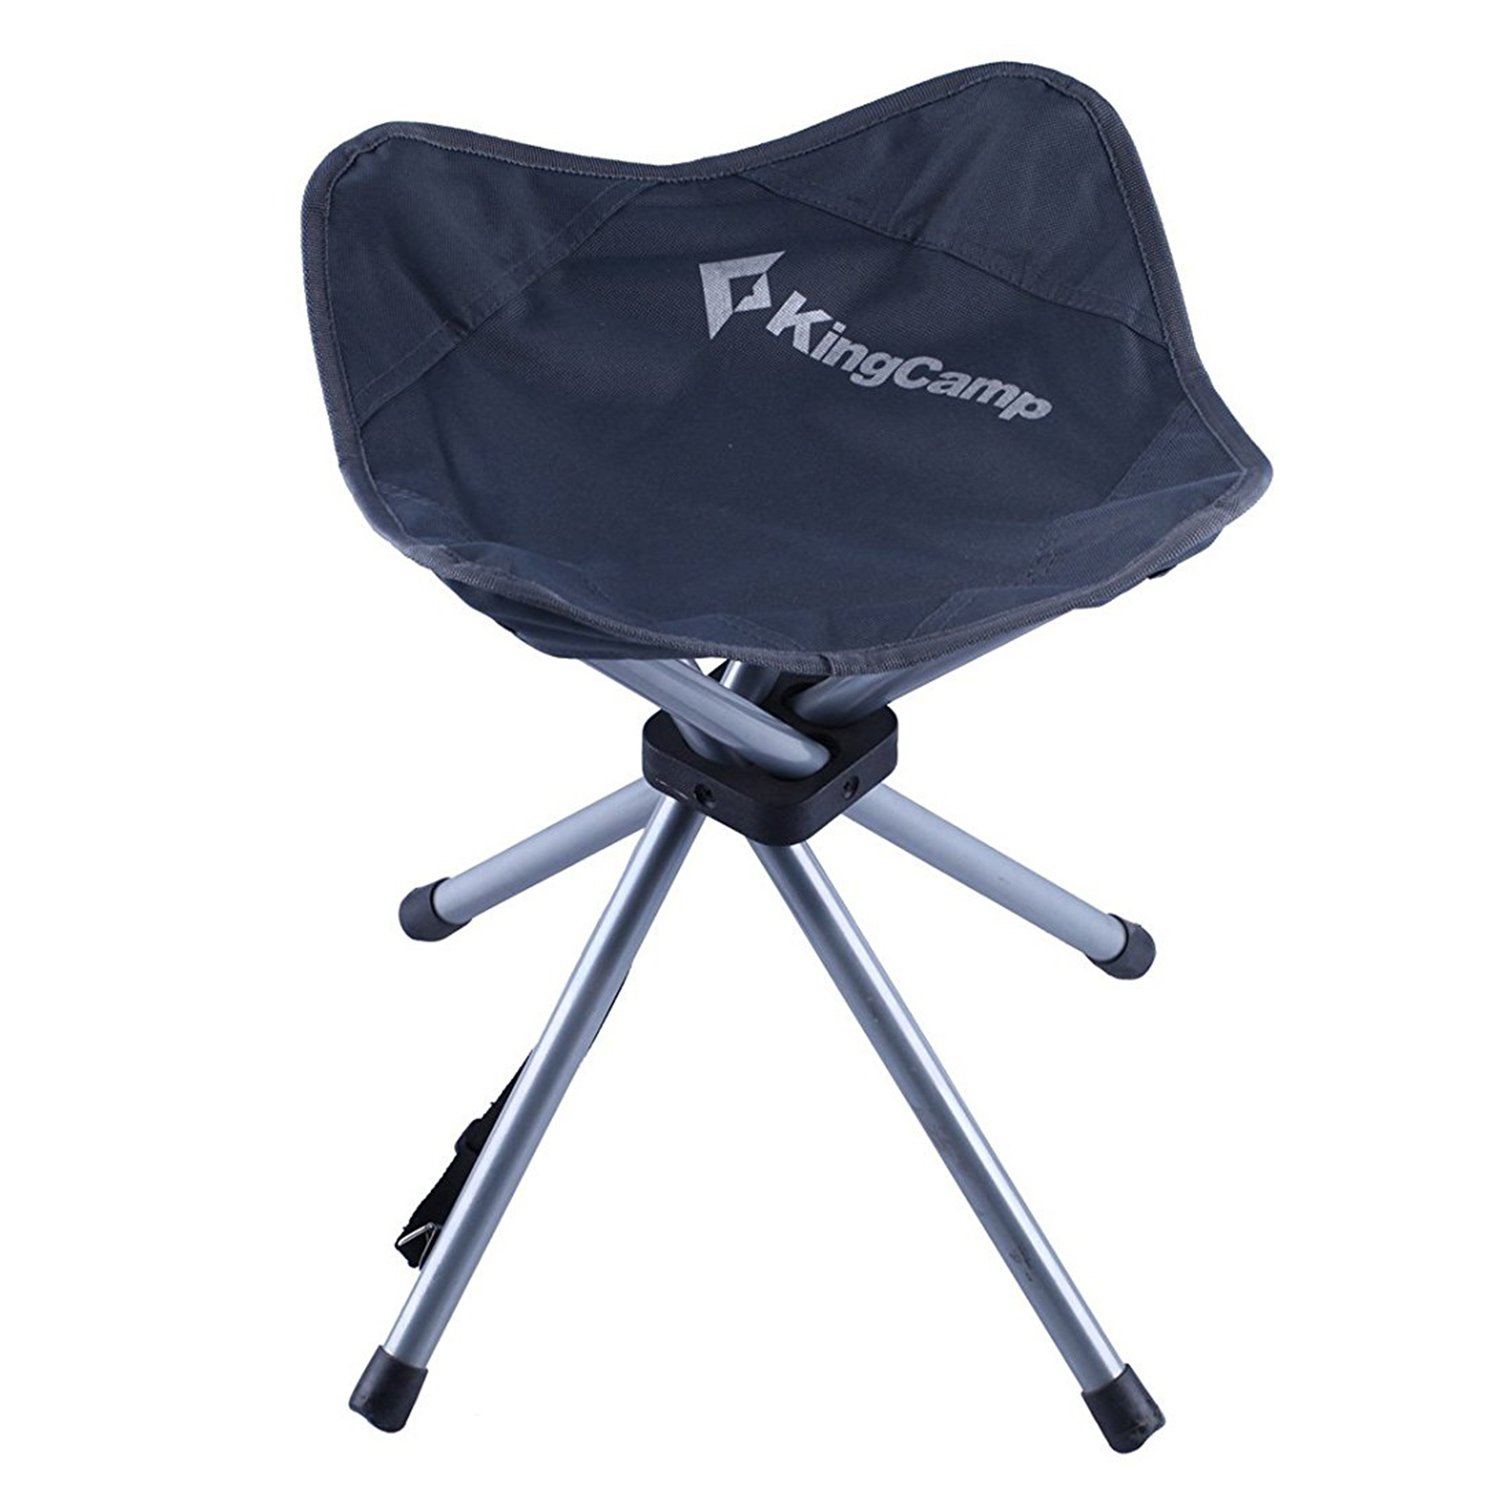 KingCamp Slacker Chair 4 Legs Folding Camp Stool Lightweight Portable Oversized Seat for Outdoor Fishing Camping Hiking